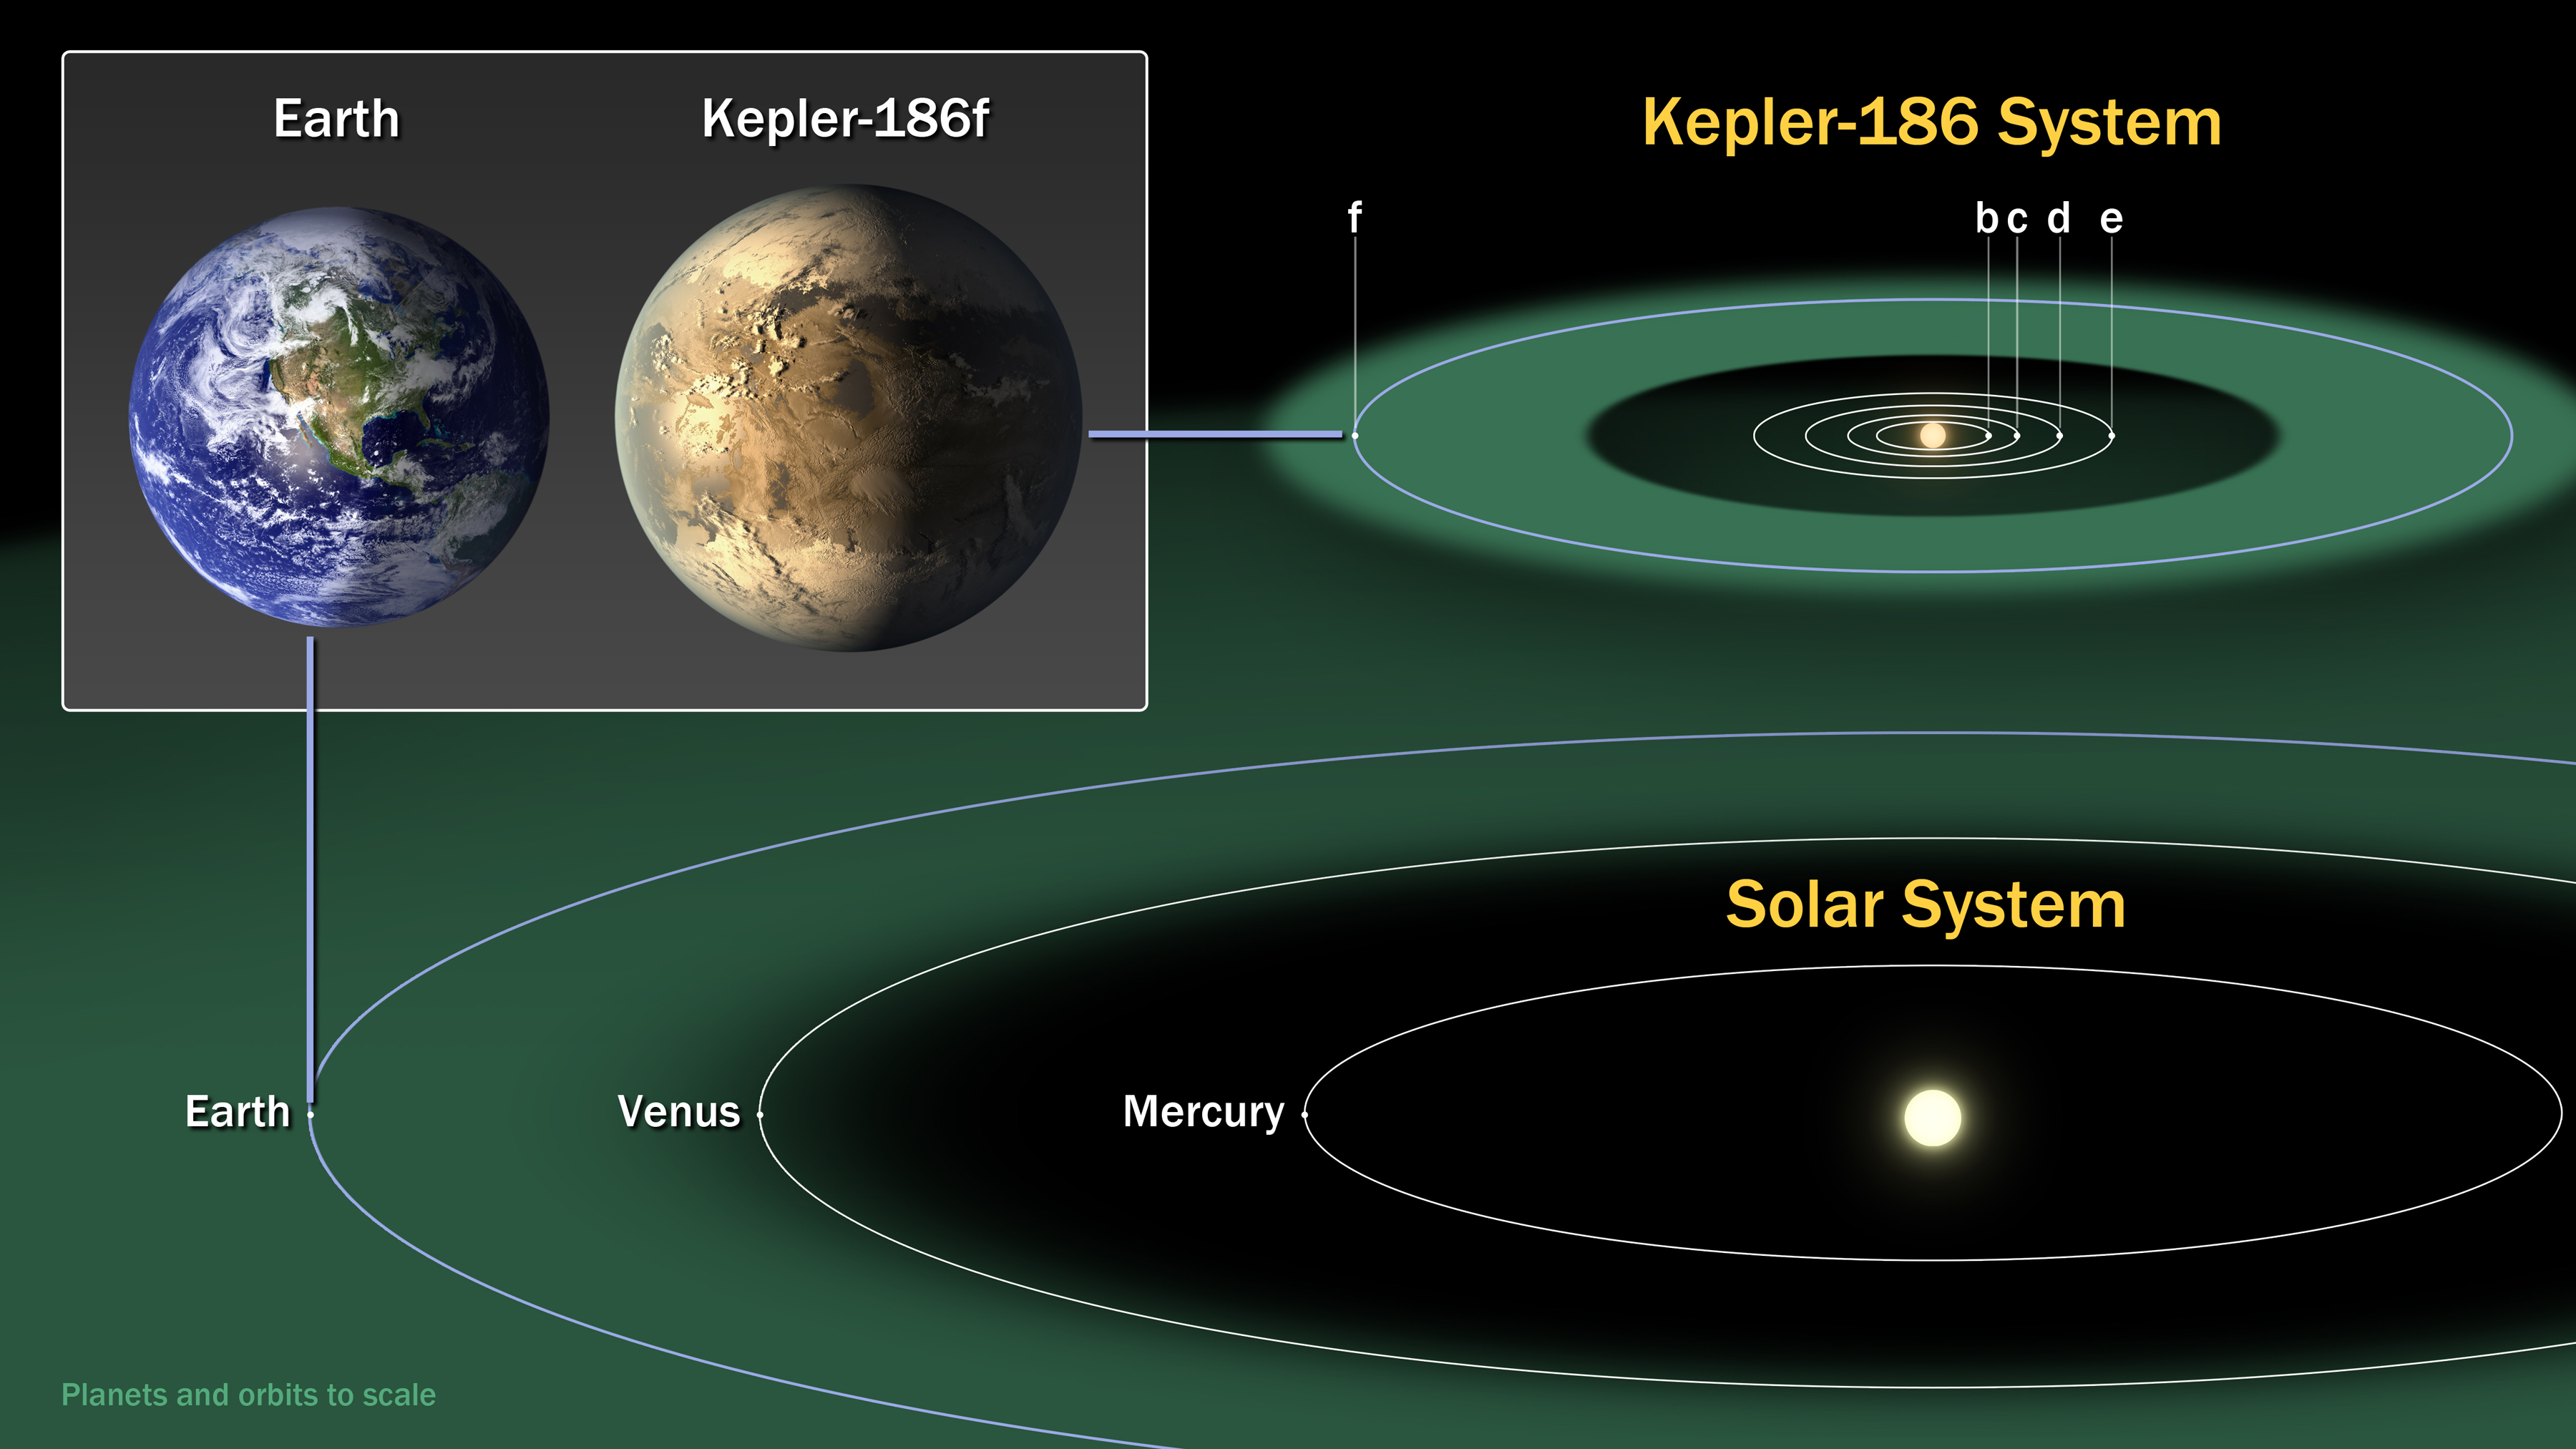 A comparison of Earth and Kepler-186f